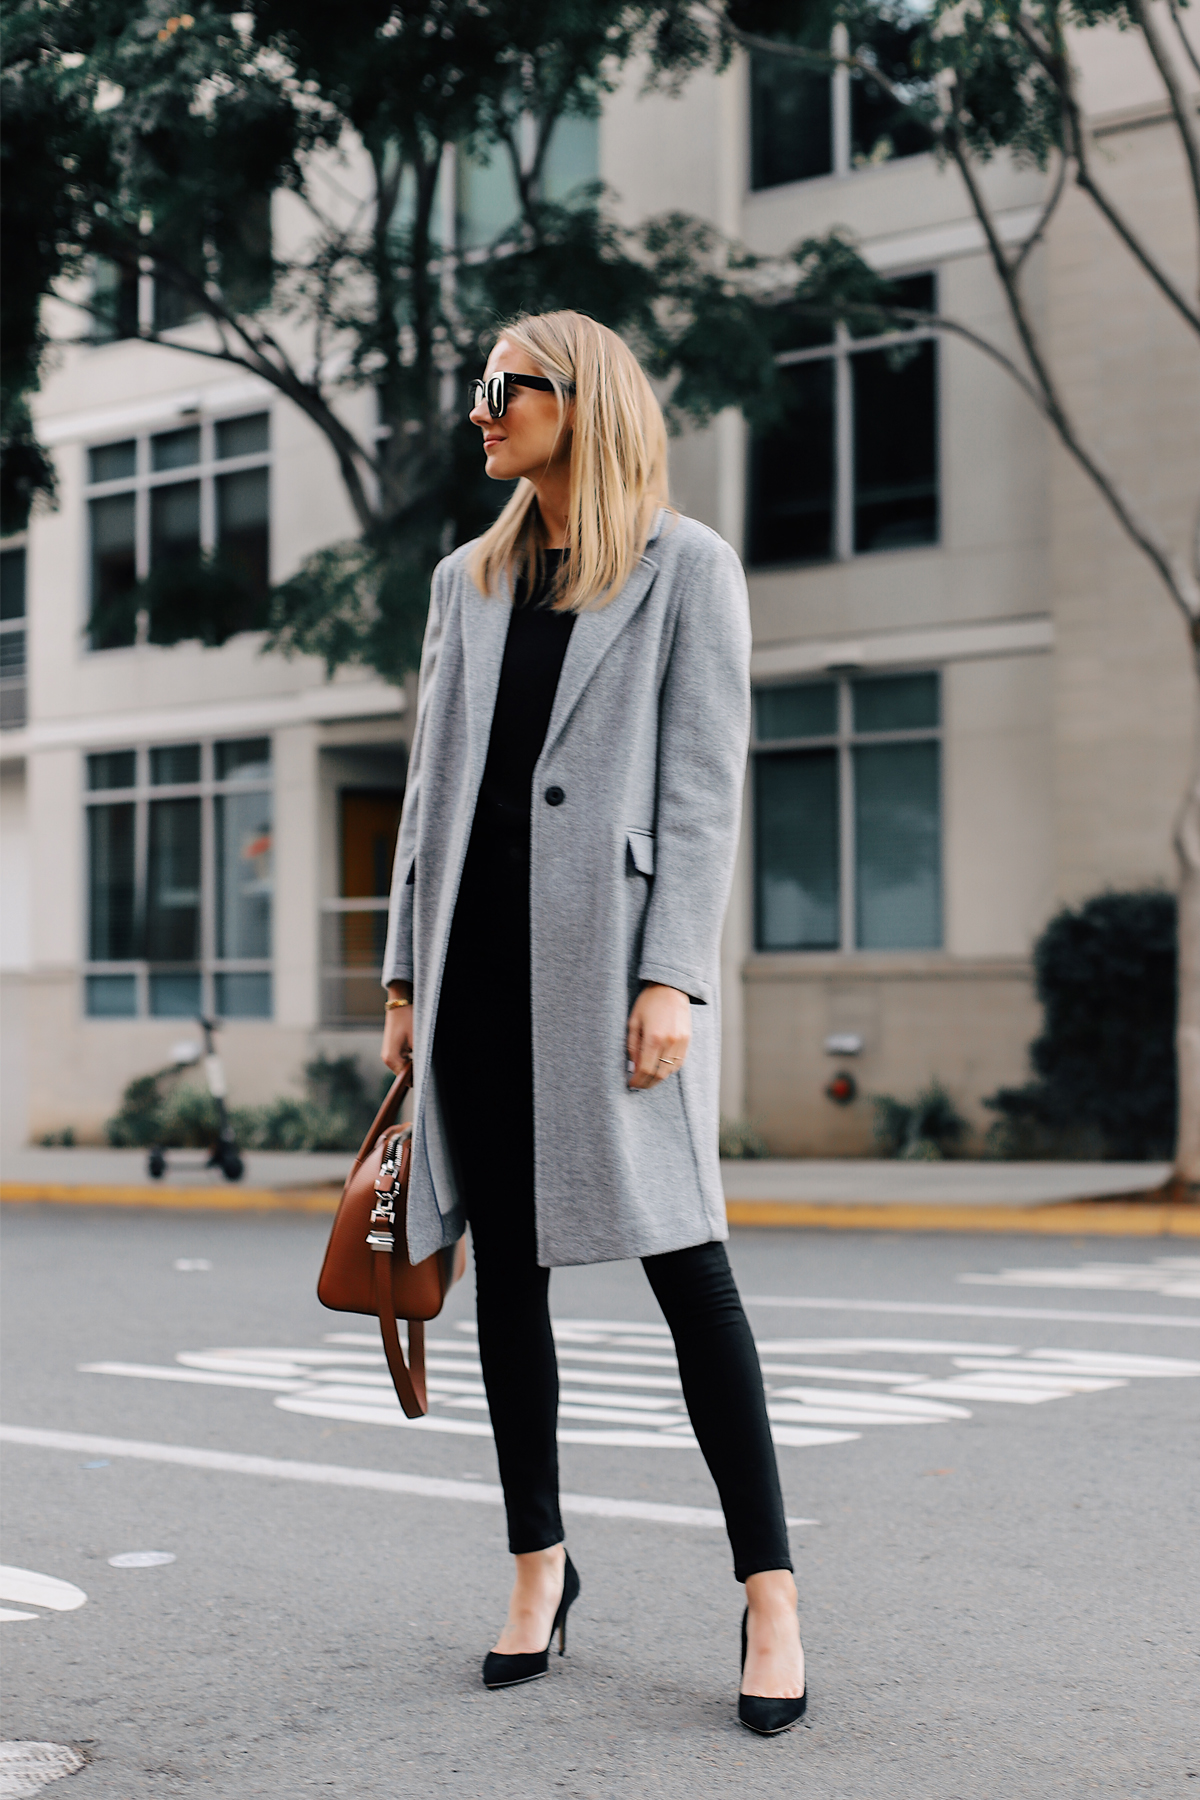 Blonde Woman Wearing Topshop Grey Wool Coat Black Sweater Black Skinny Jeans Black Pumps Fashion Jackson San Diego Fashion Blogger Street Style